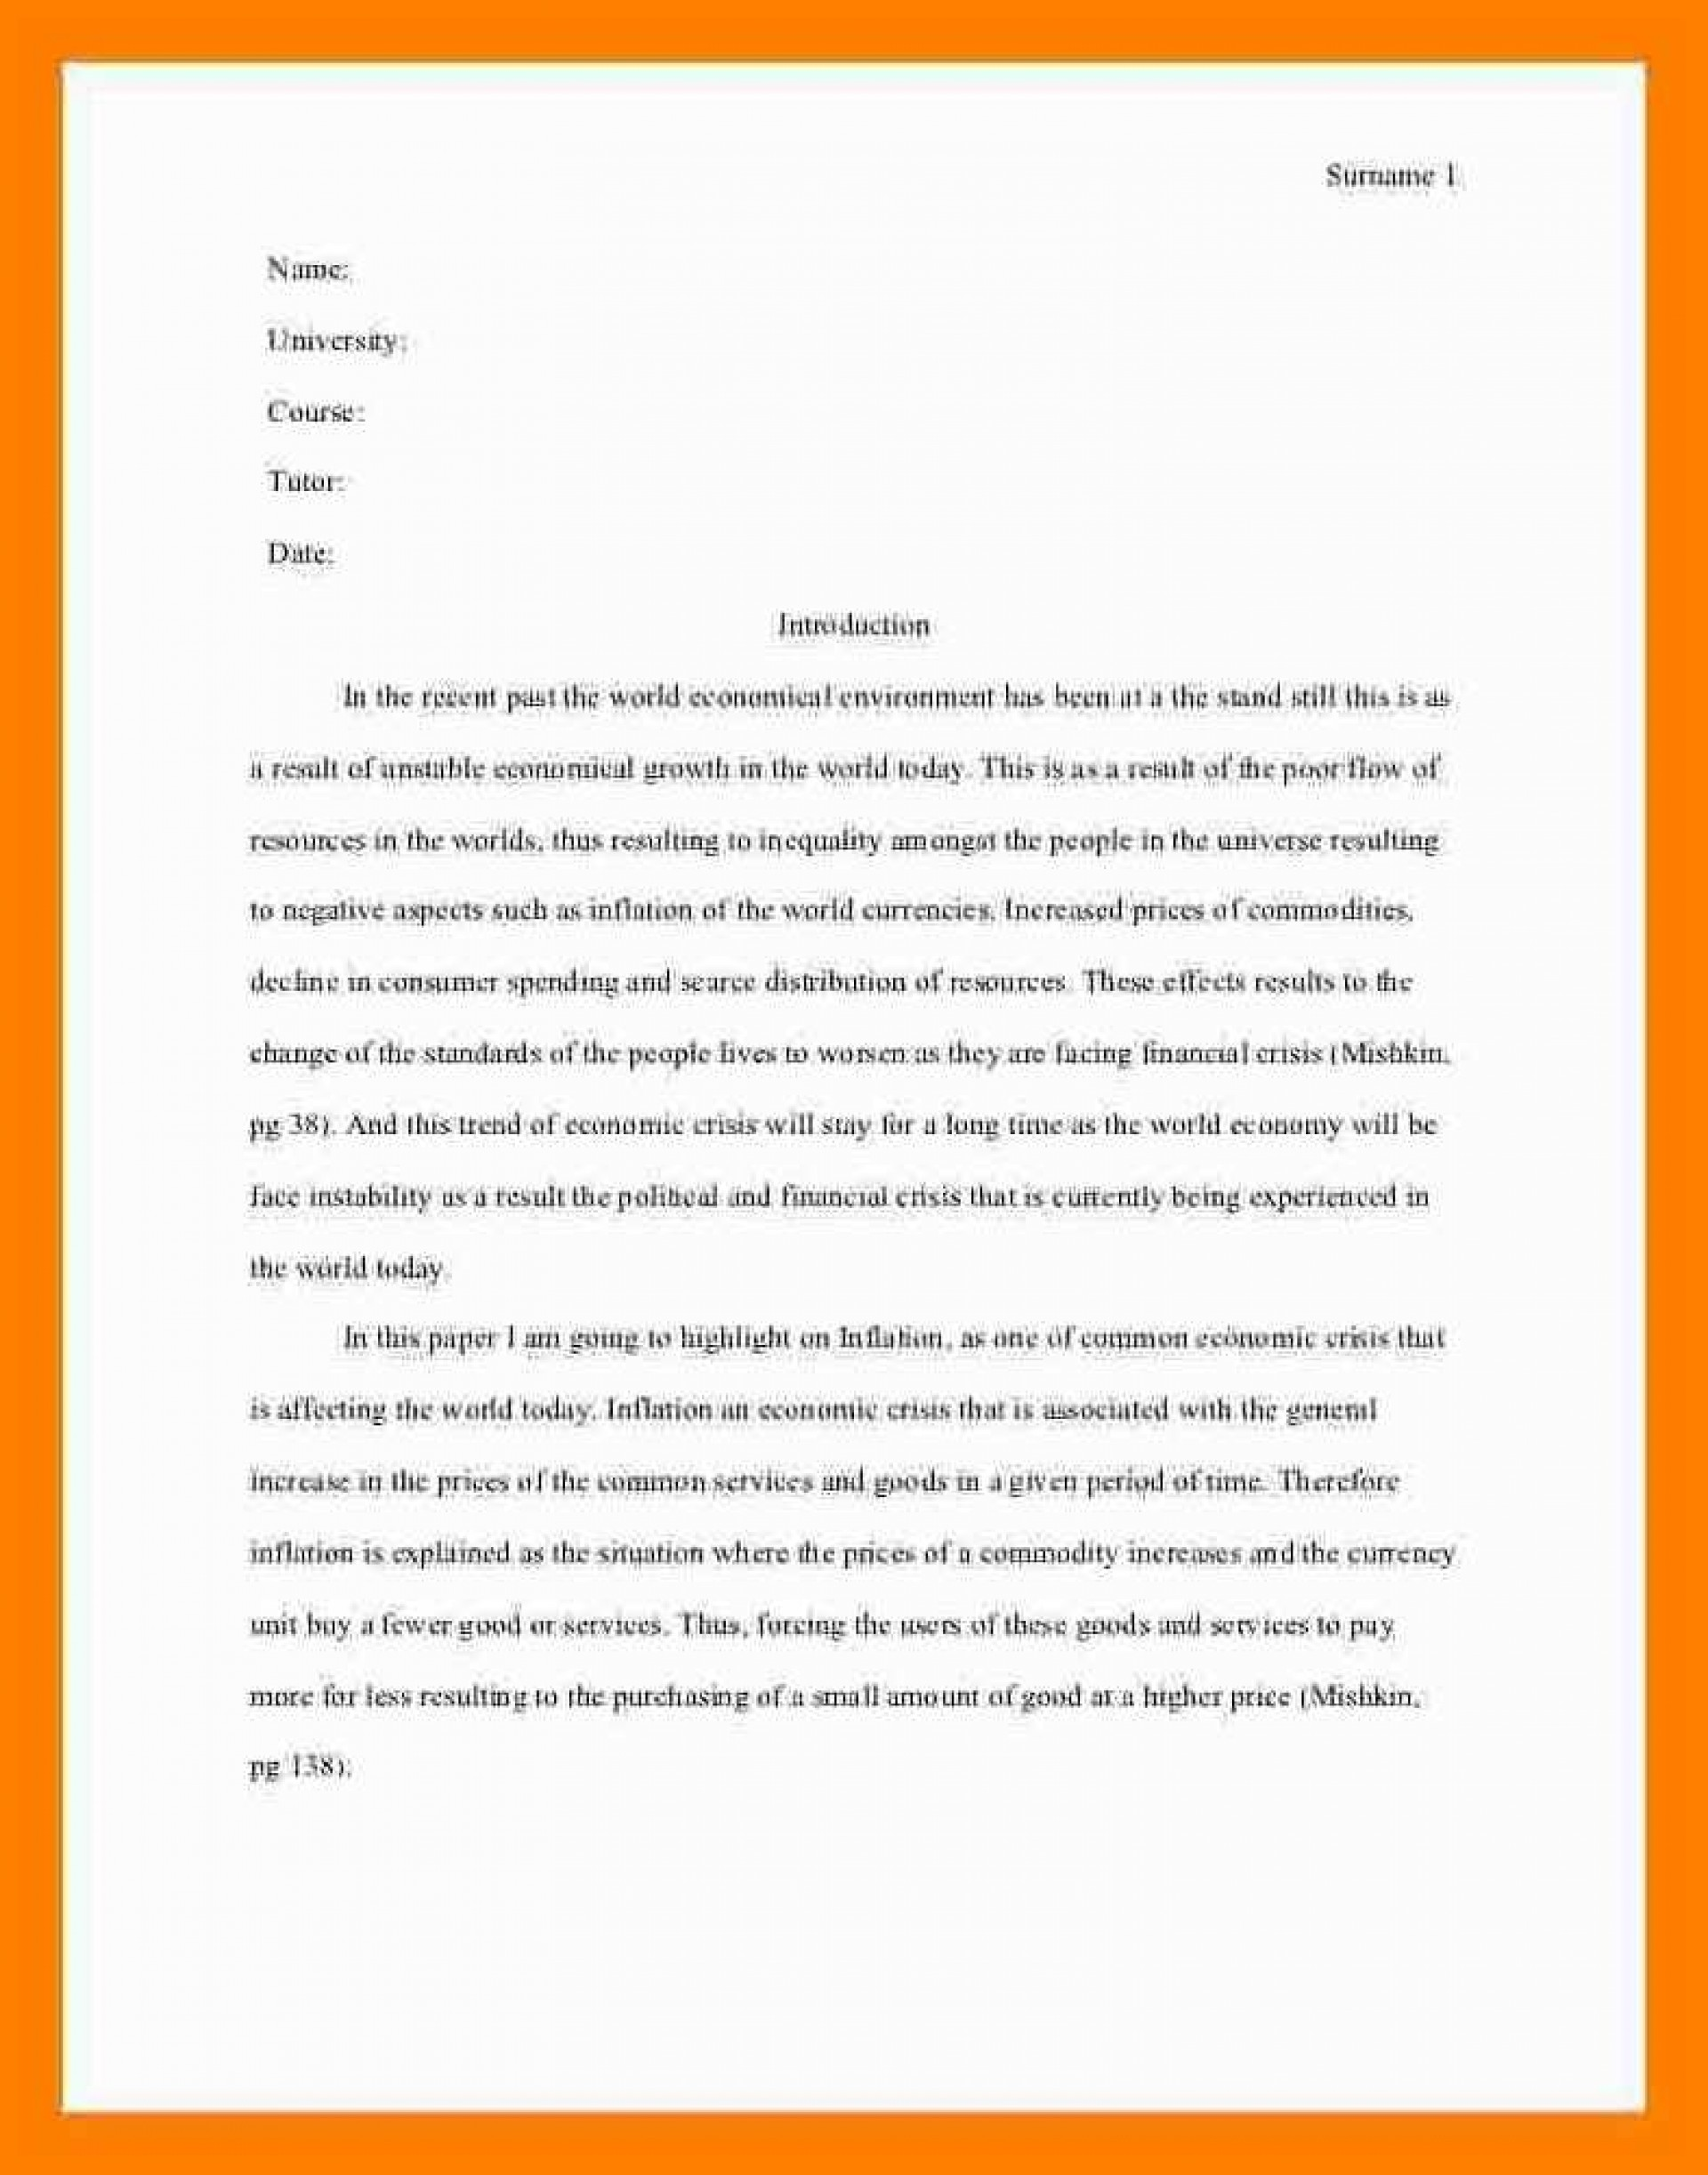 005 Essay Example Asa Format Sample Mla Style One Aspect Of The Current Economic Crisis Remarkable Reference Generator Heading Citation 1920